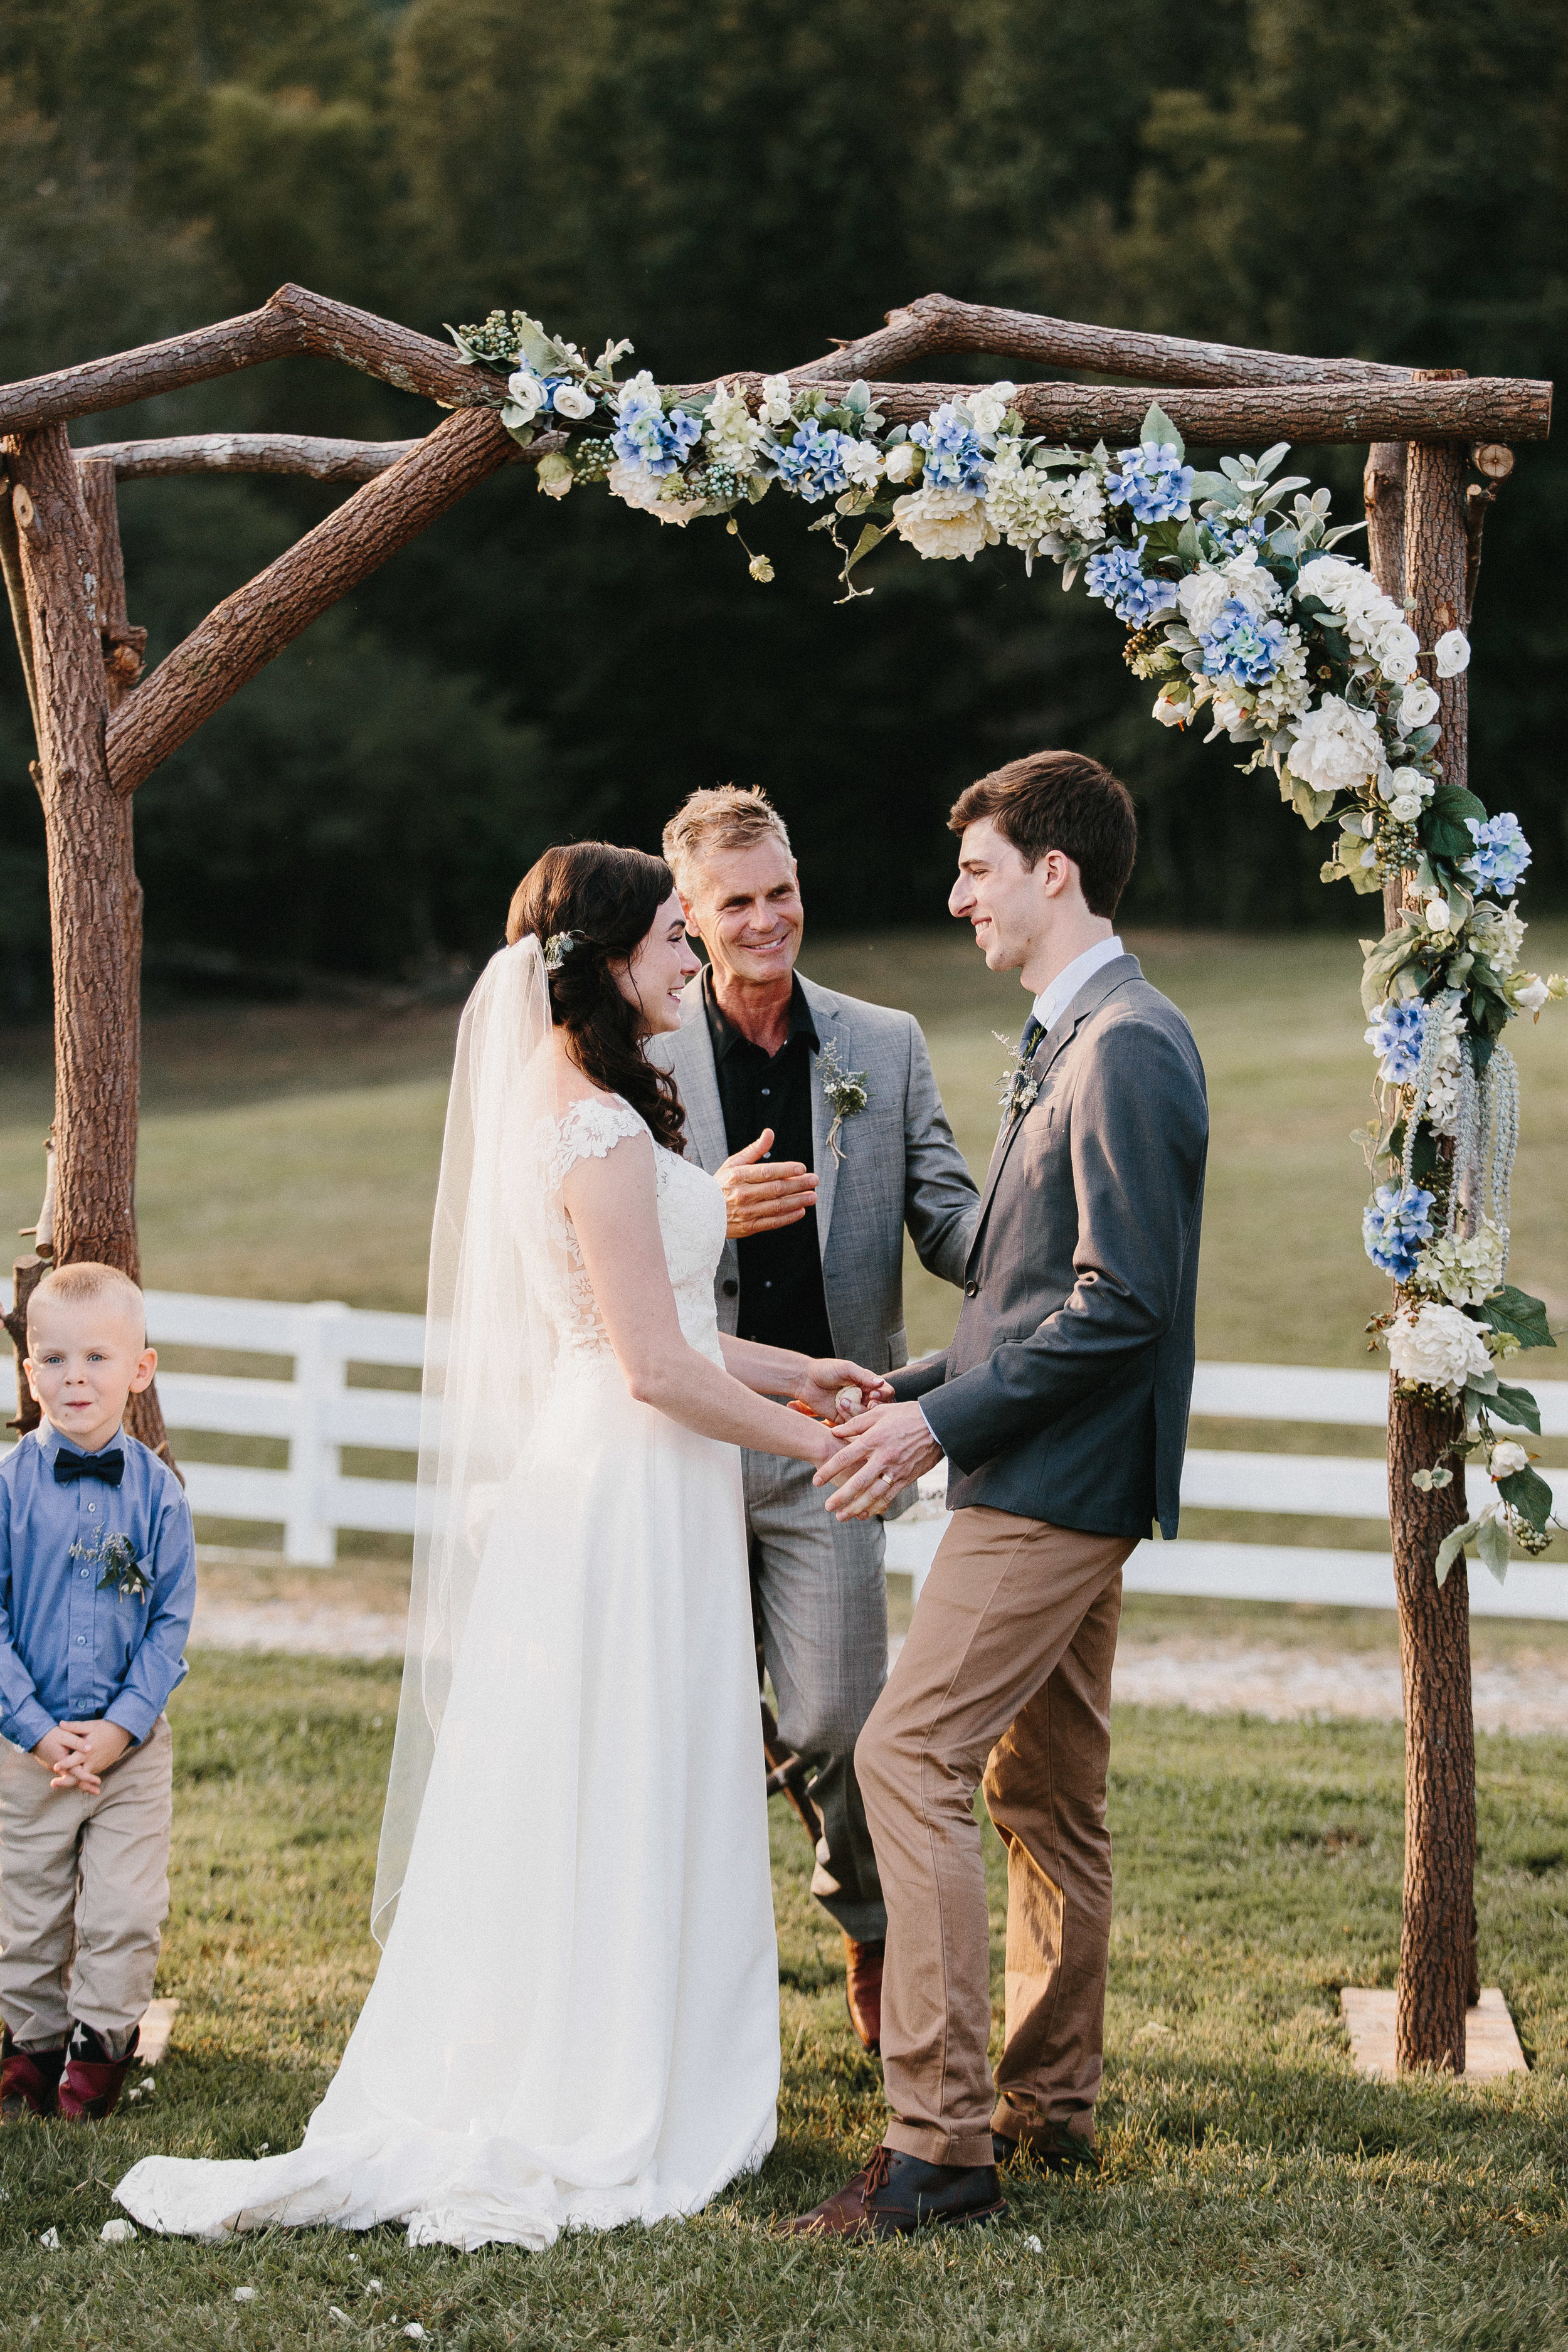 cleveland_georgia_mountain_laurel_farm_natural_classic_timeless_documentary_candid_wedding_emotional_photojournalism_river_west_1695.jpg